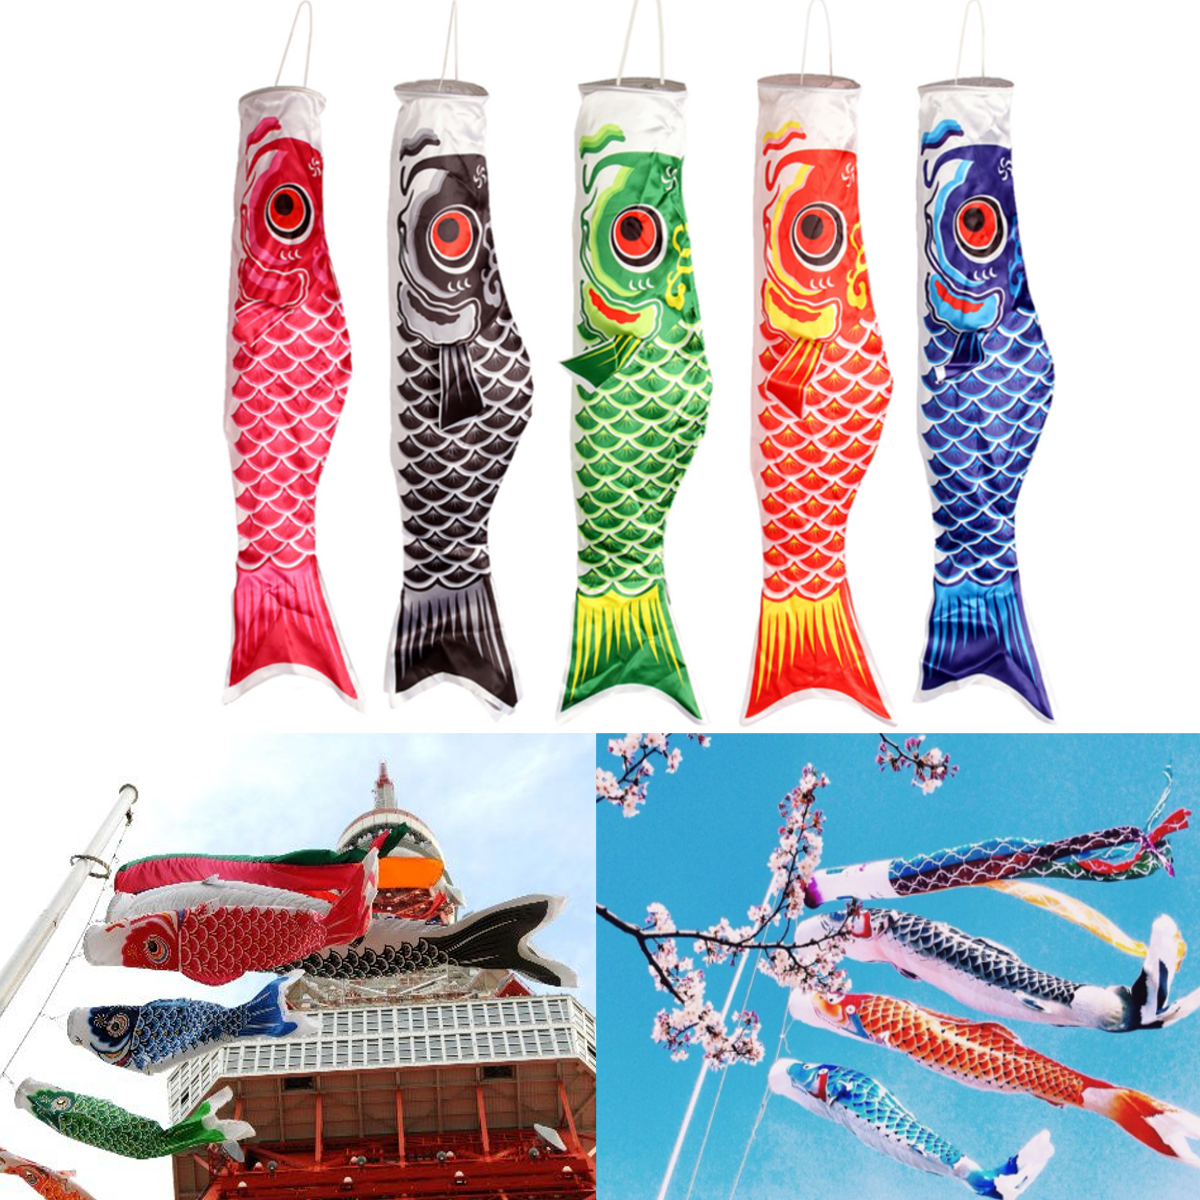 70cm Colorful Japanese Style Carp Windsock Streamer Fish Flag Kite Koi Nobori Koinobori  Home Party Decorations